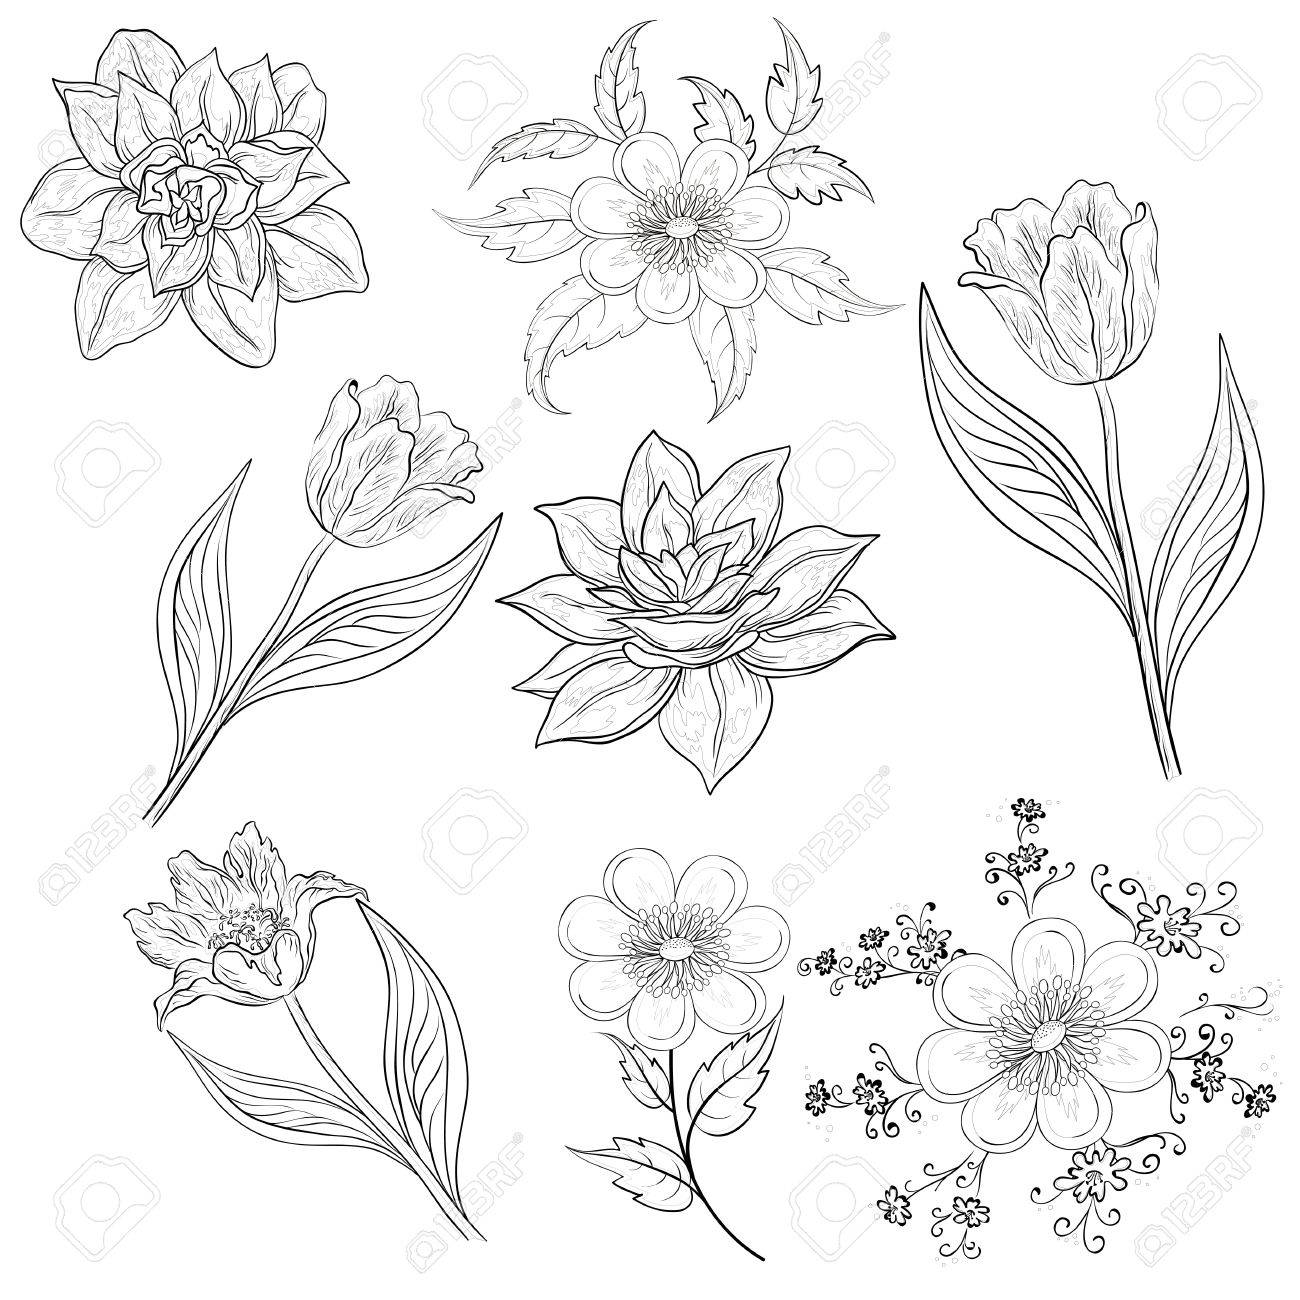 Set of flowers  tulip, narcissus, symbolical  Black contour on white background  Vector illustration Stock Vector - 14309162